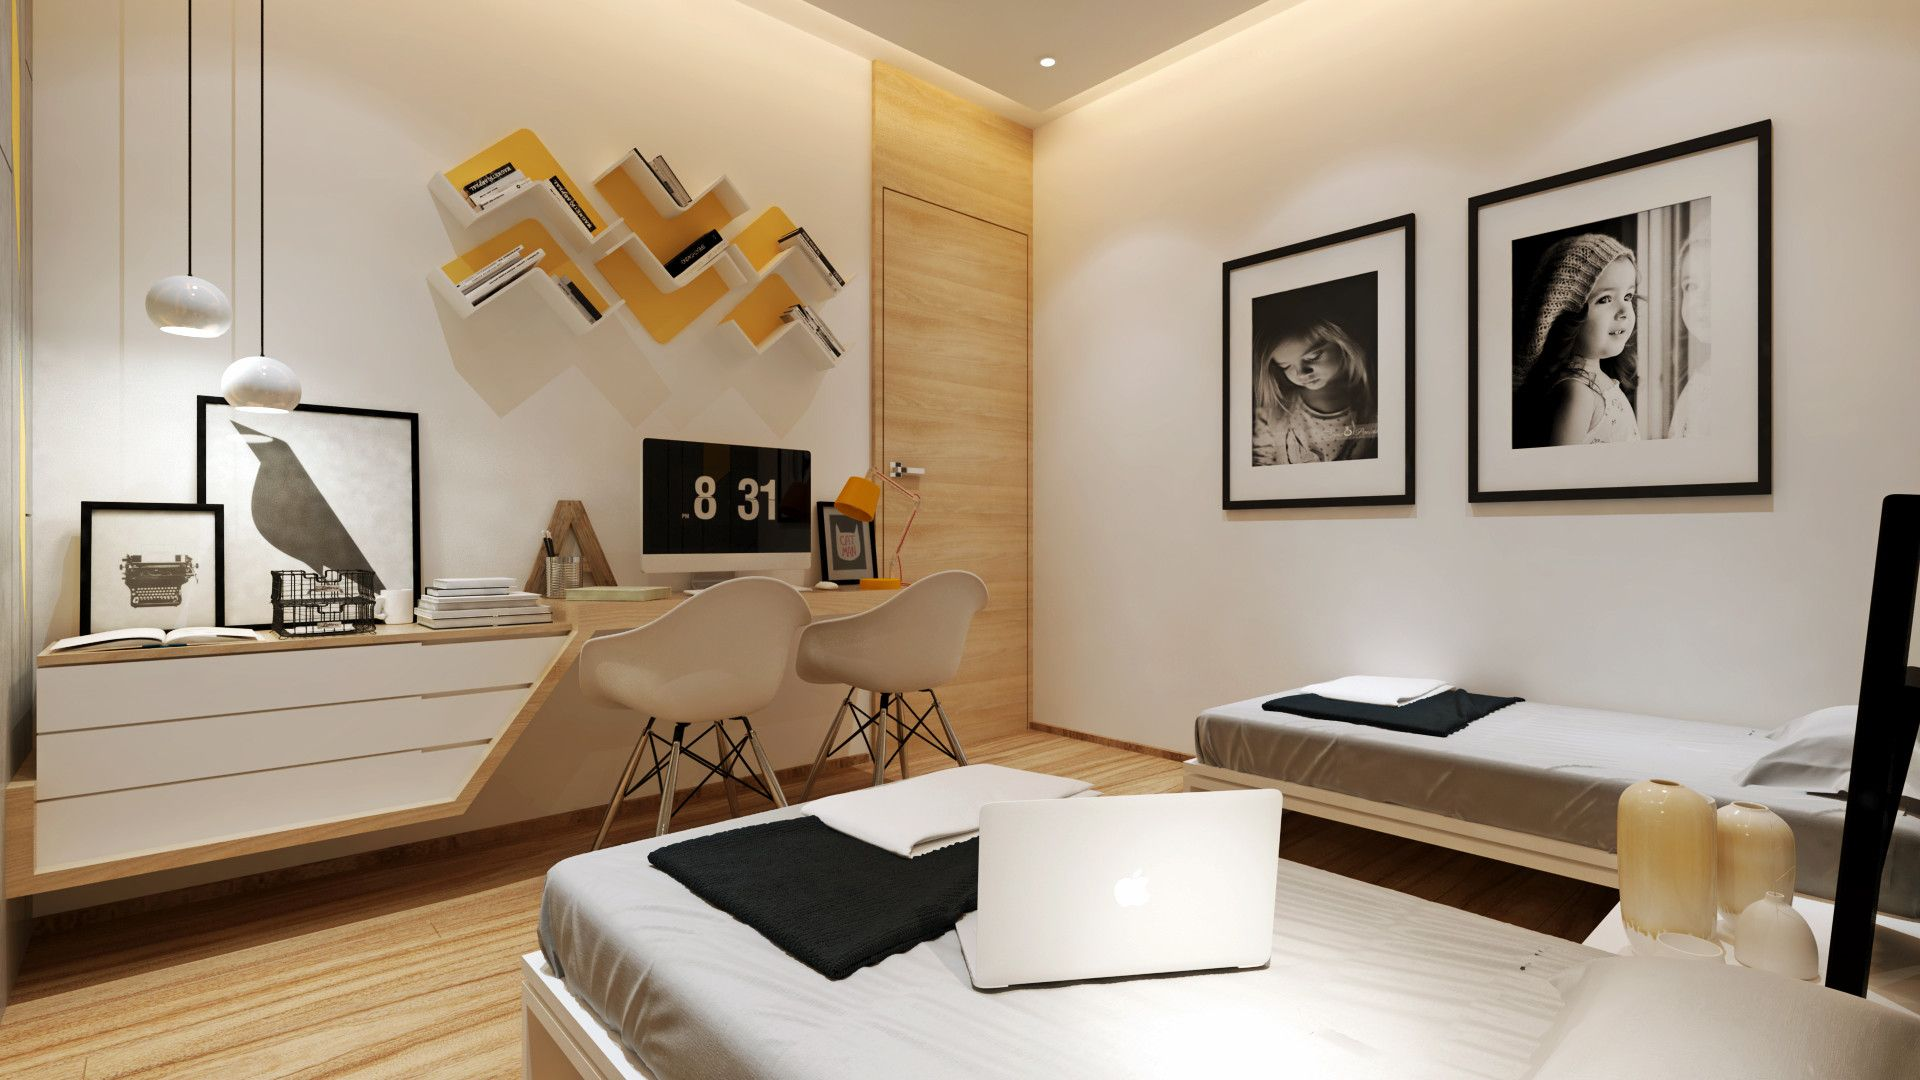 Modern style interior of bed room with